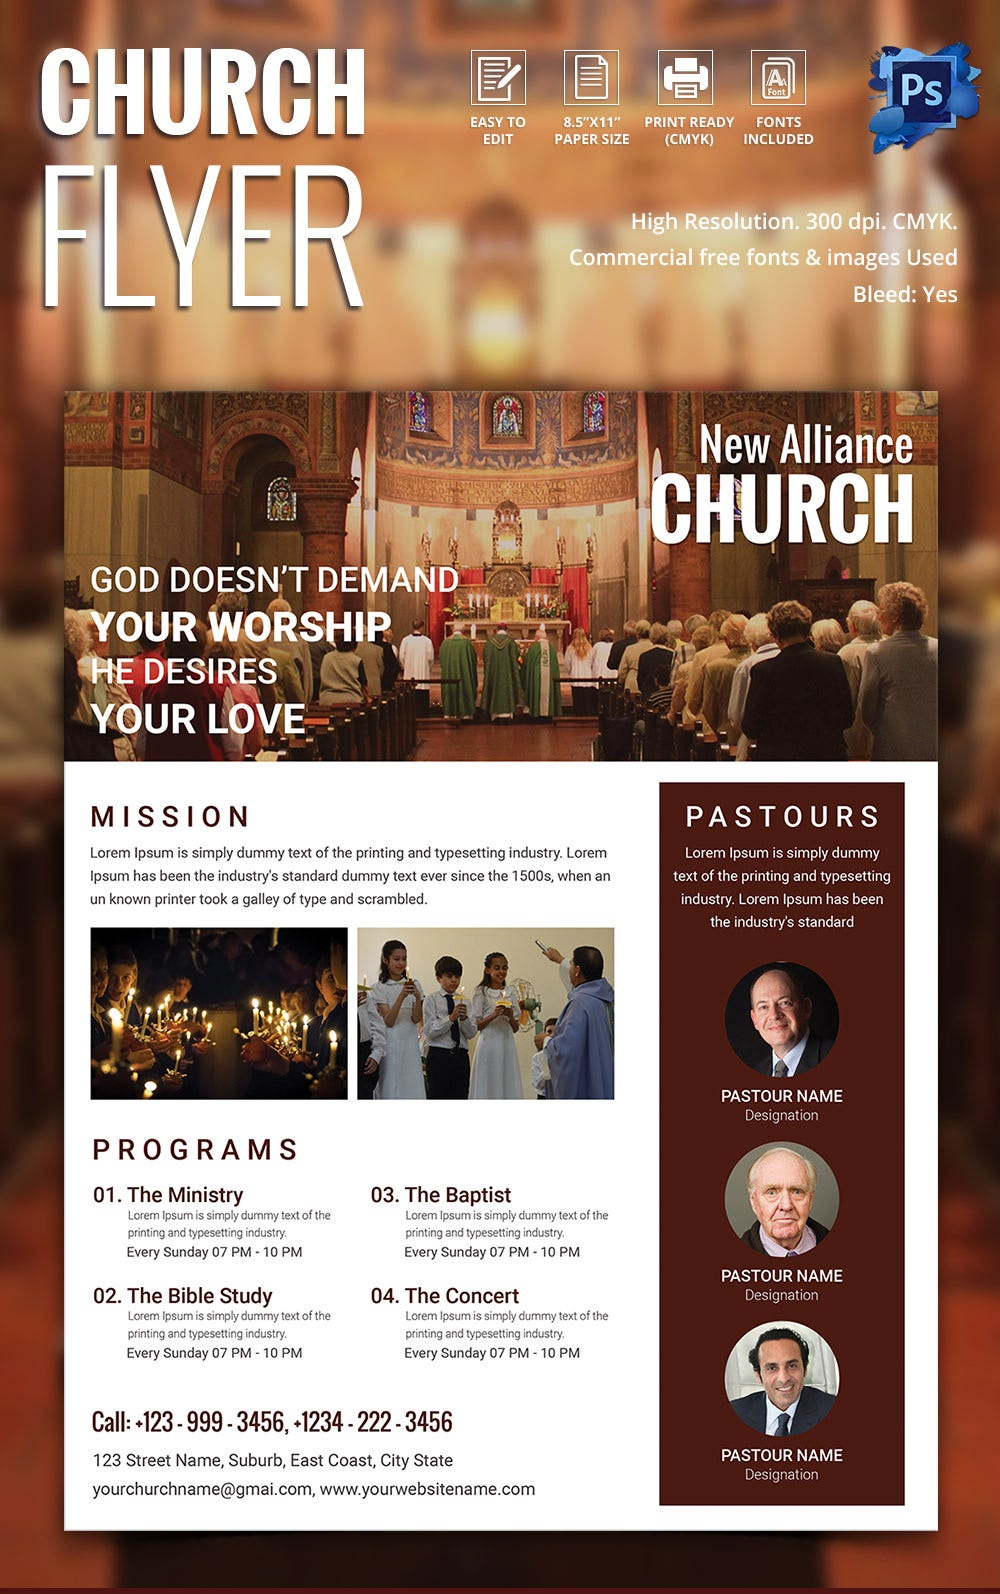 Church flyers 26 free psd ai vector eps format for Religious flyers template free